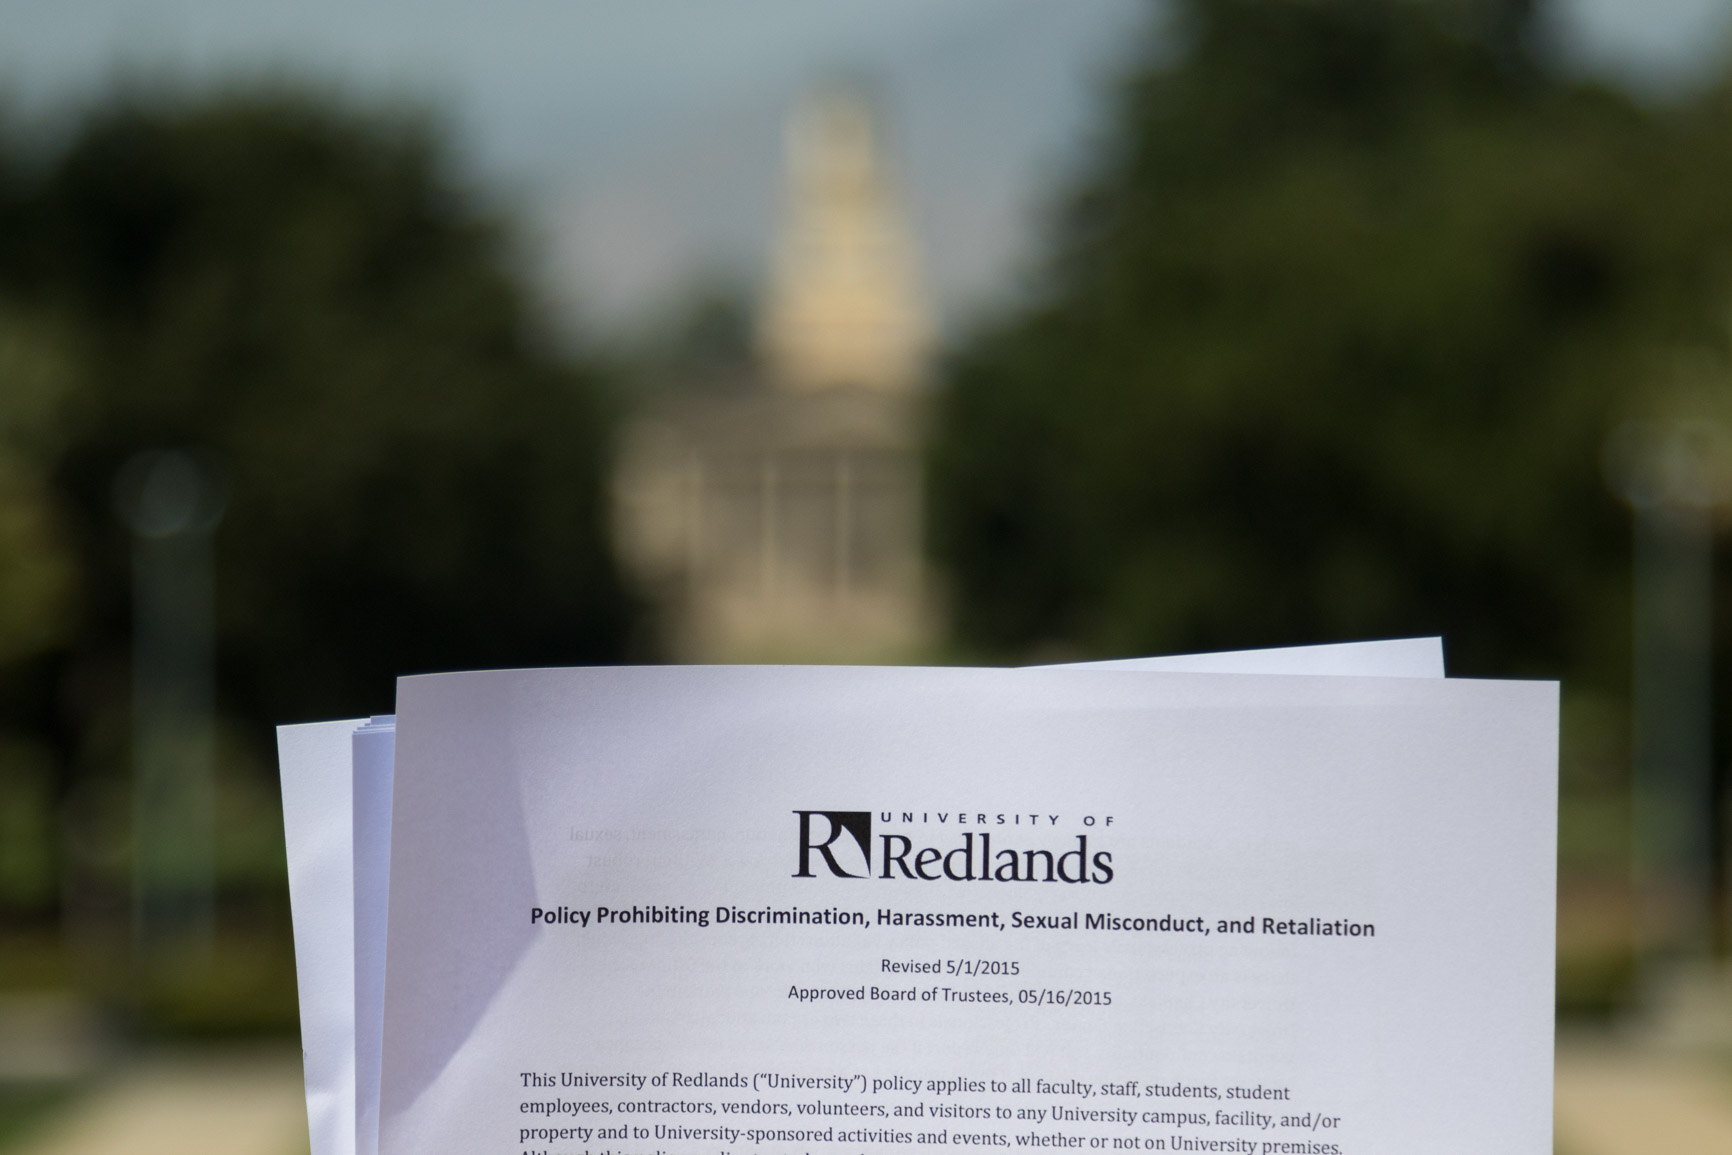 Title IX Policy at the University of Redlands Explained